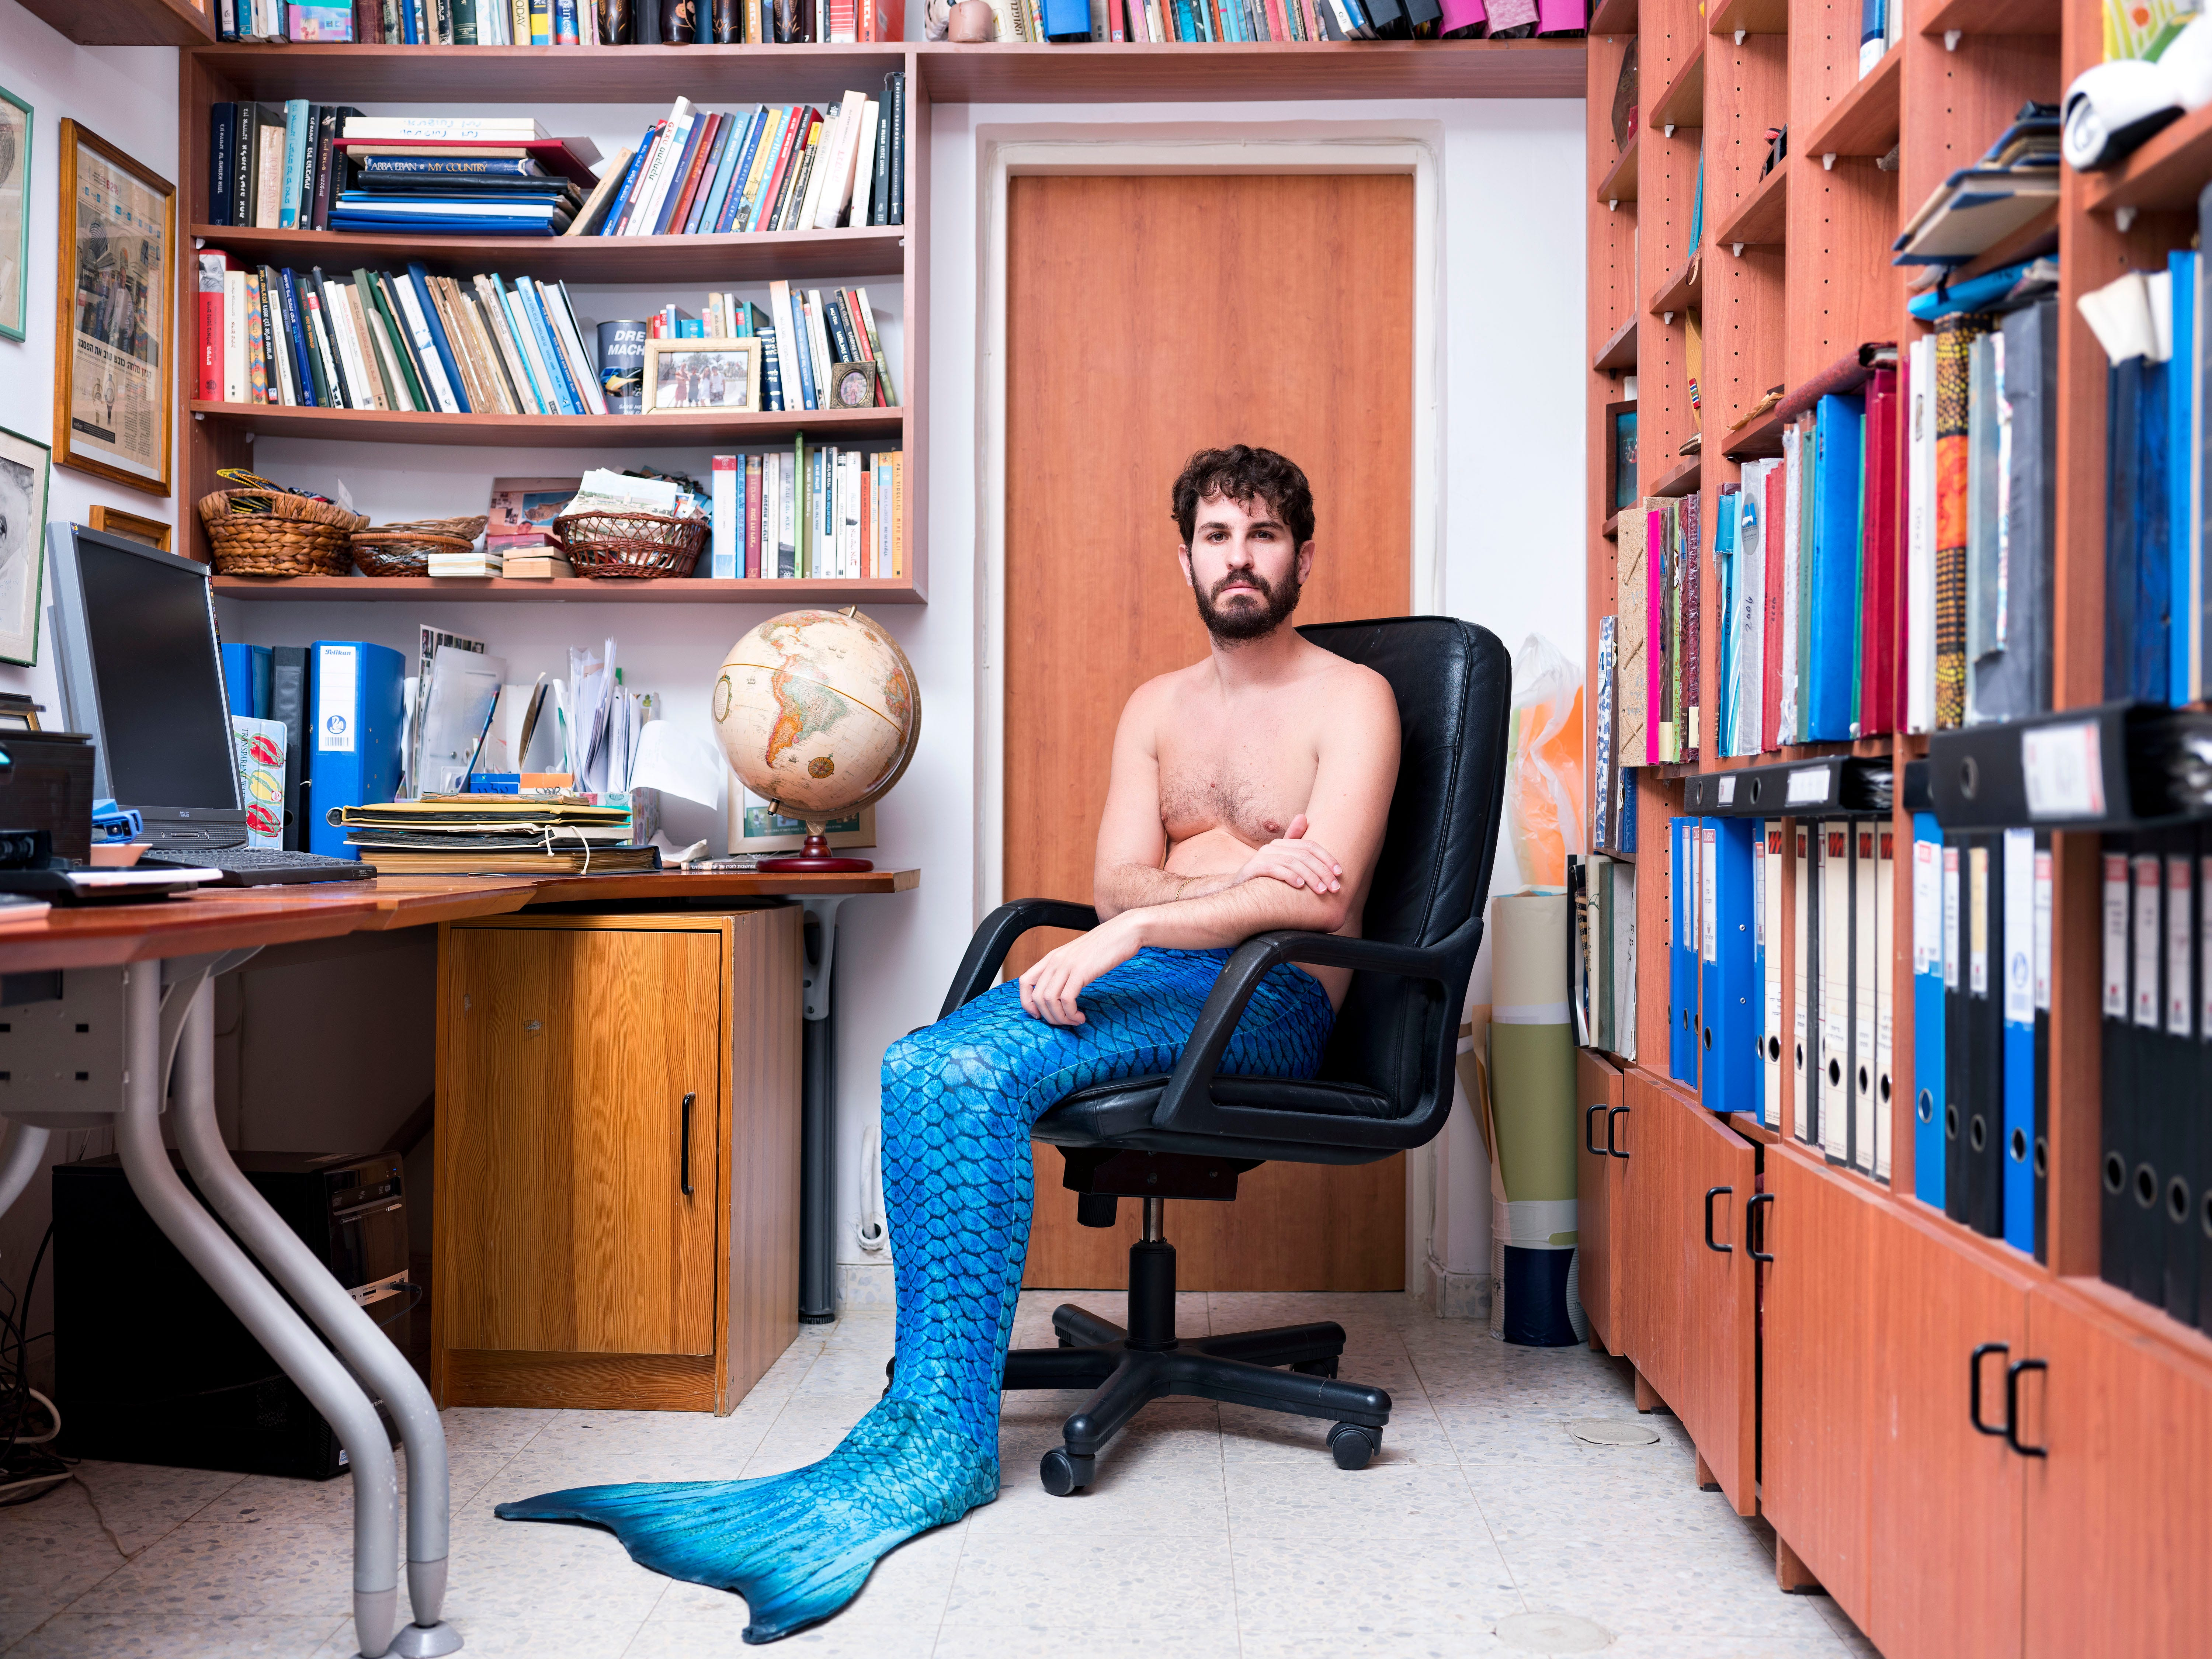 Yuval Avrami, a member of the Israeli Mermaid Community, poses for a portrait wearing a tail at his home in Jerusalem. One of the clan's few mer-men, says he learned about the trend through transgender friends and became fascinated by the transition from one species to another, the ability to inhabit a new, magical identity.